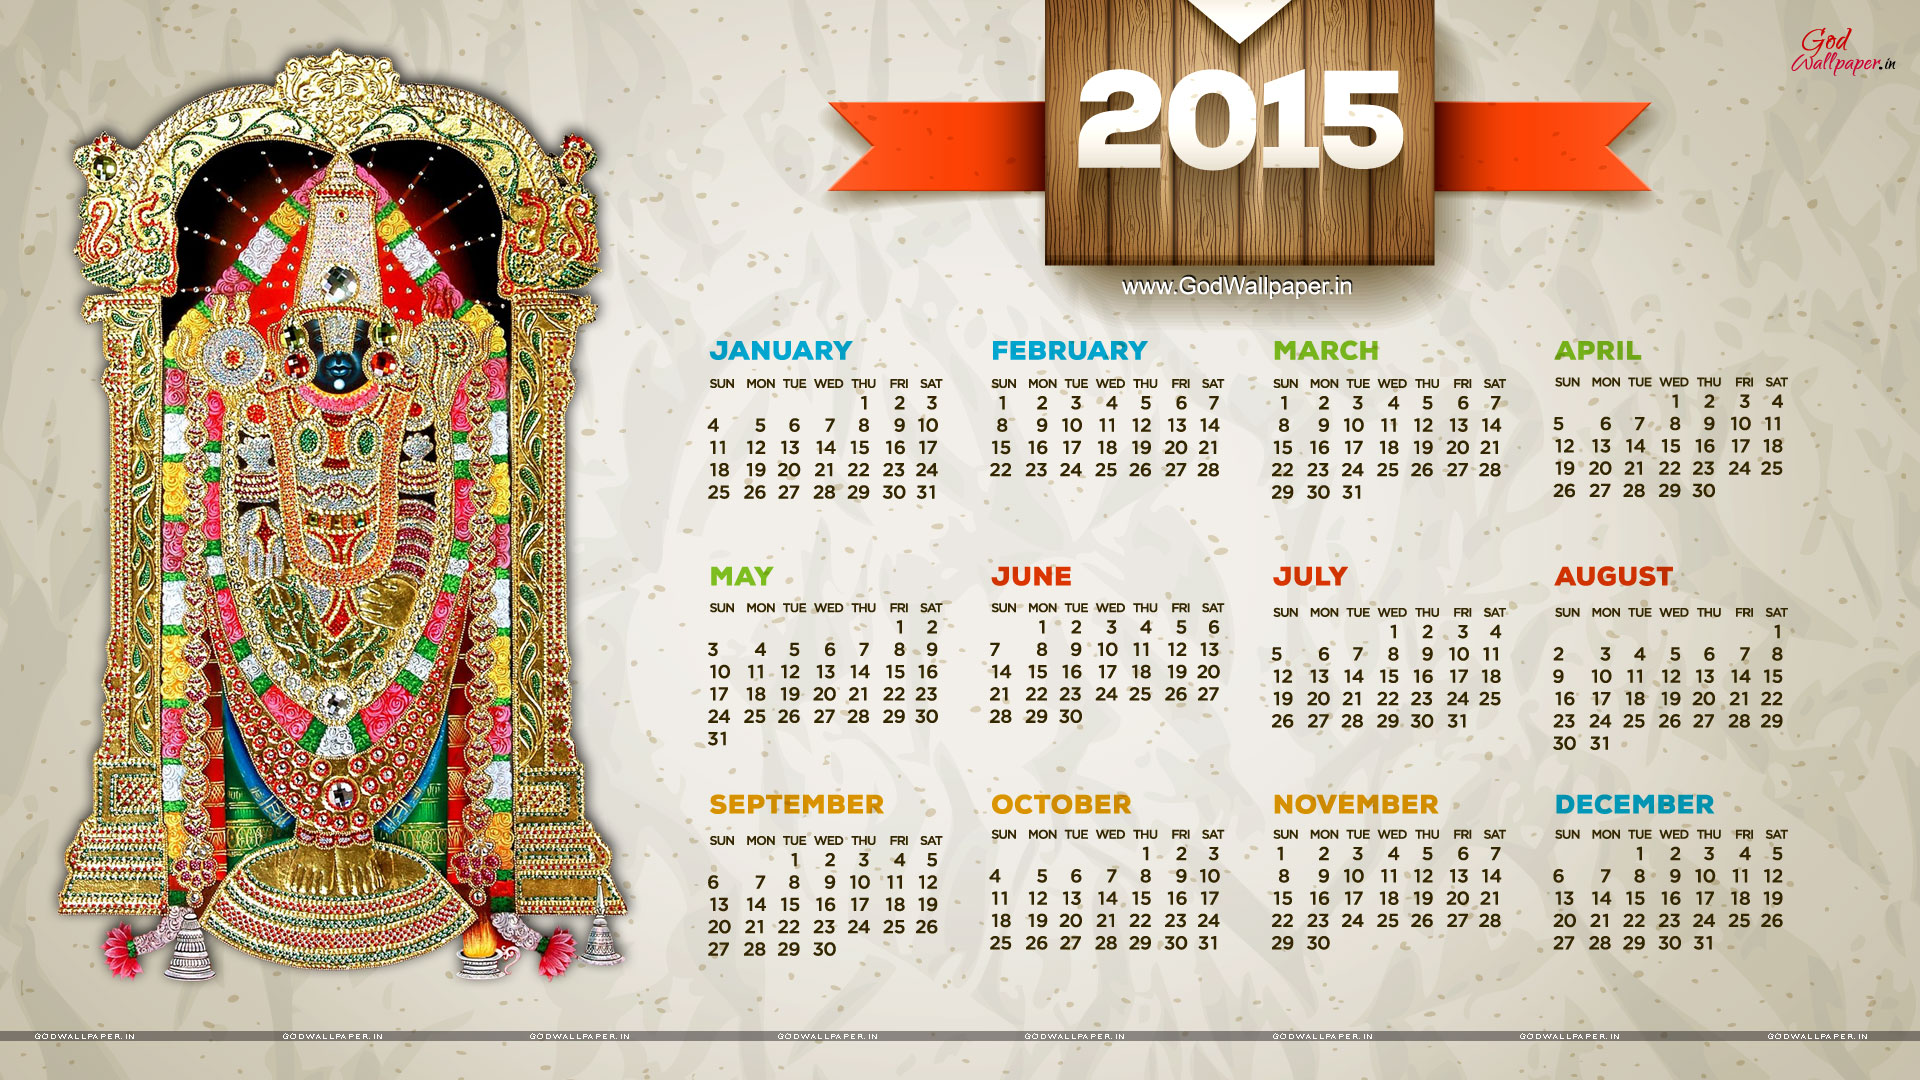 free download 2015 calendar wallpapers for desktop and interactive 1920x1080